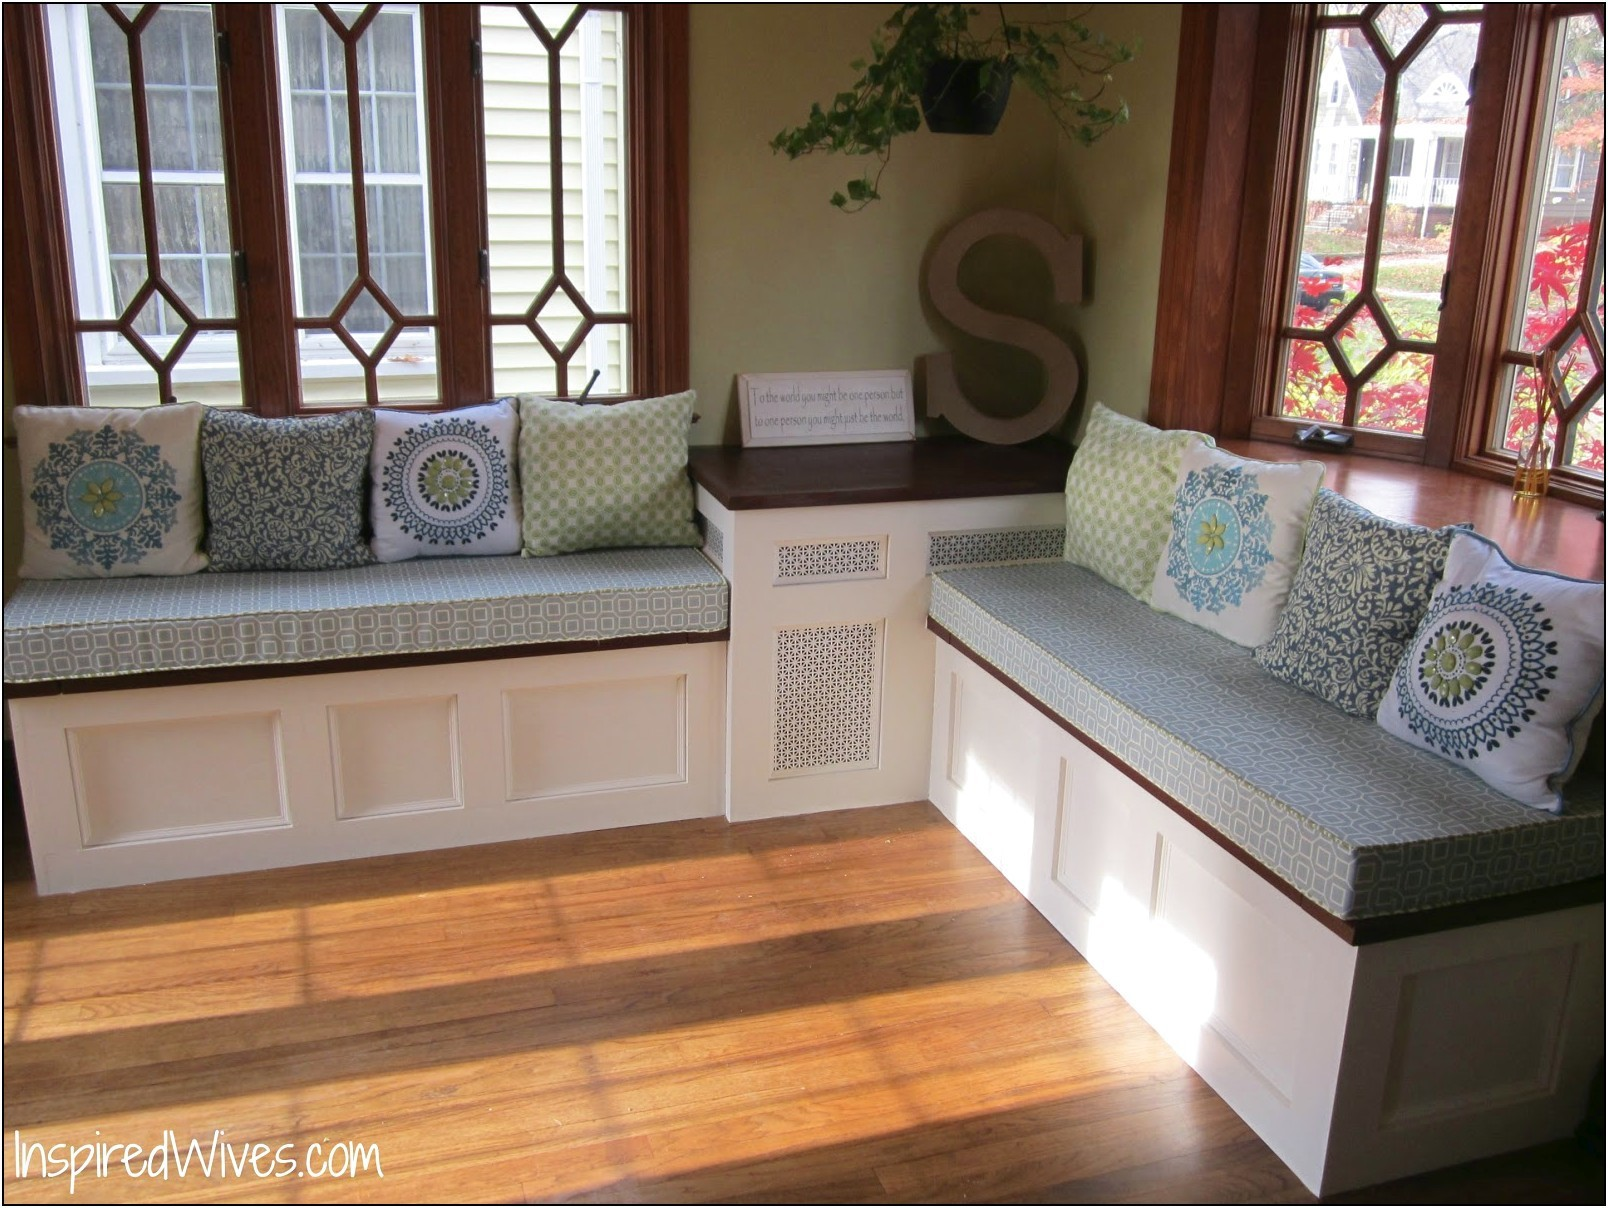 3. Large Kitchen Storage Bench